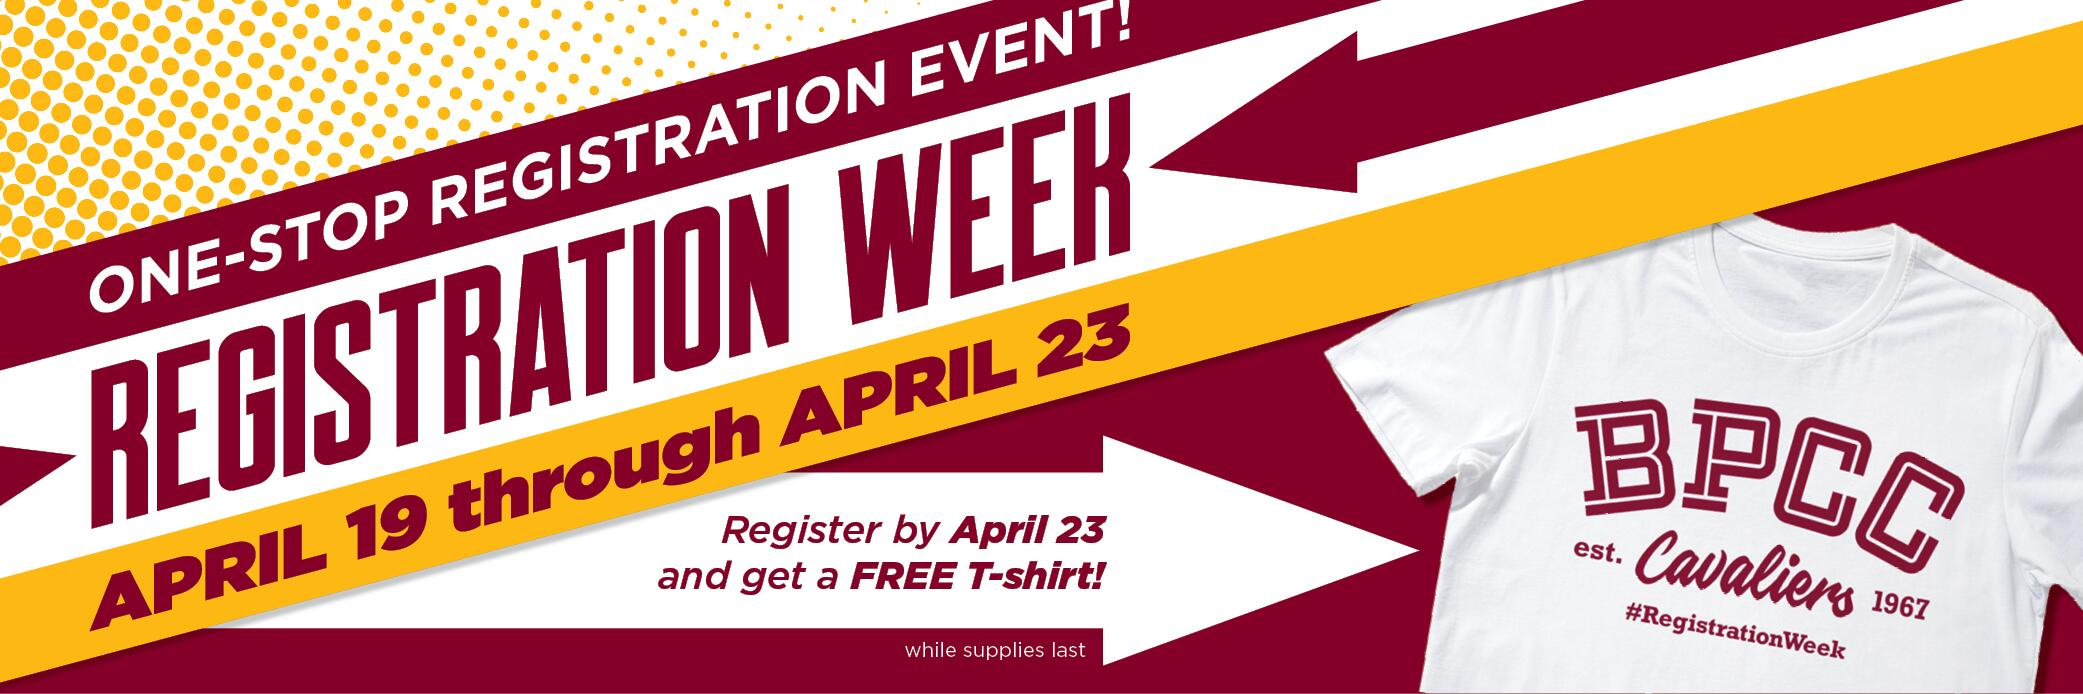 Registration week starts April 19 through April 23